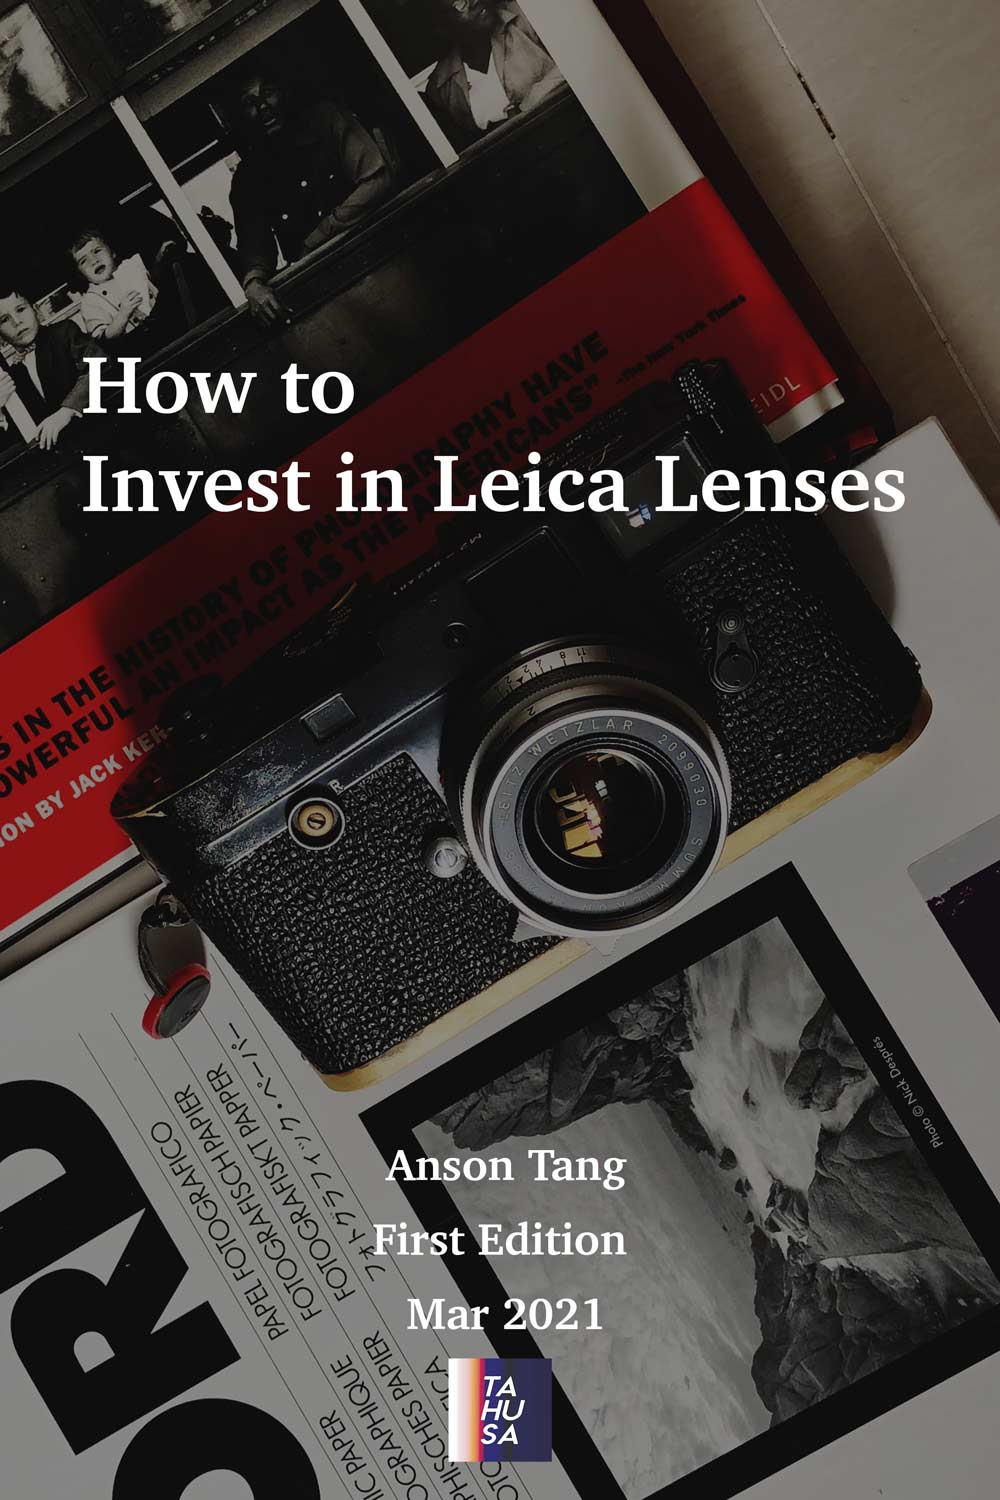 ebook-first-edition-anson-tang-how-to-invest-in-leica-lenses-guide-price-trend-2010-to-2021-investment-potentials-growth